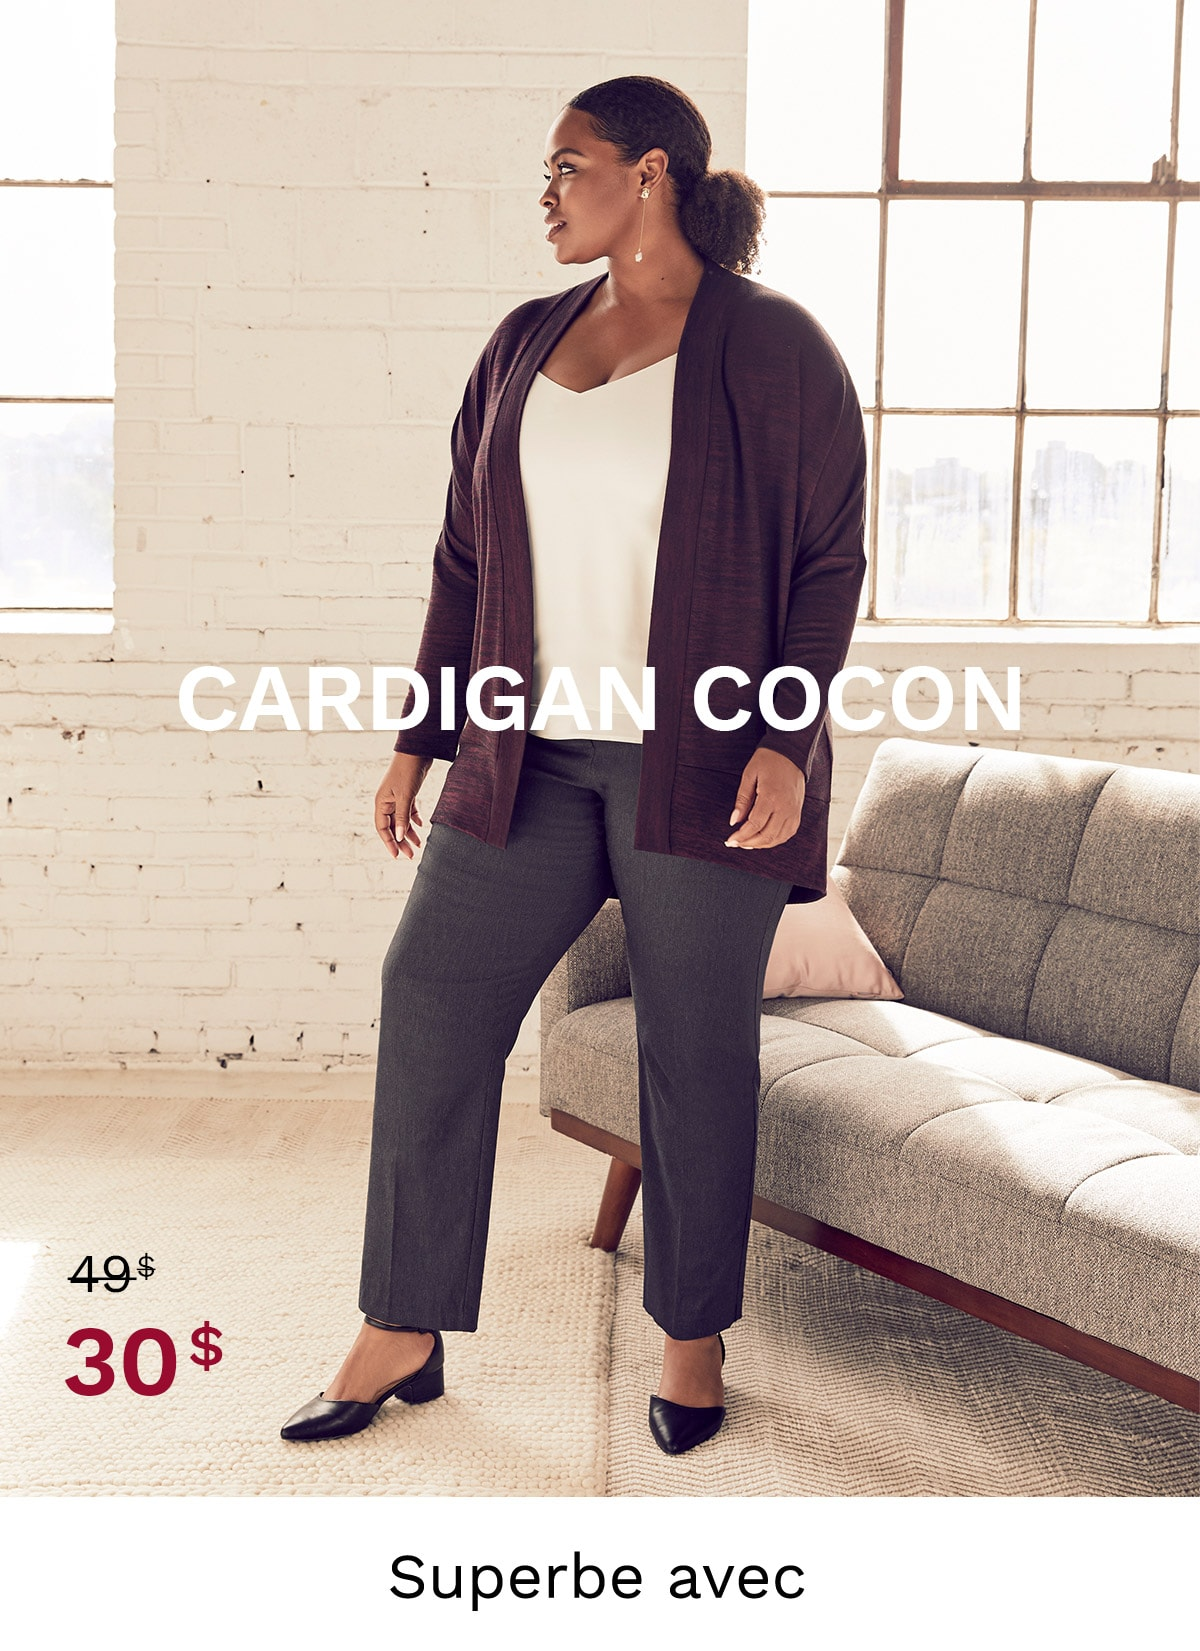 Cardigan cocon